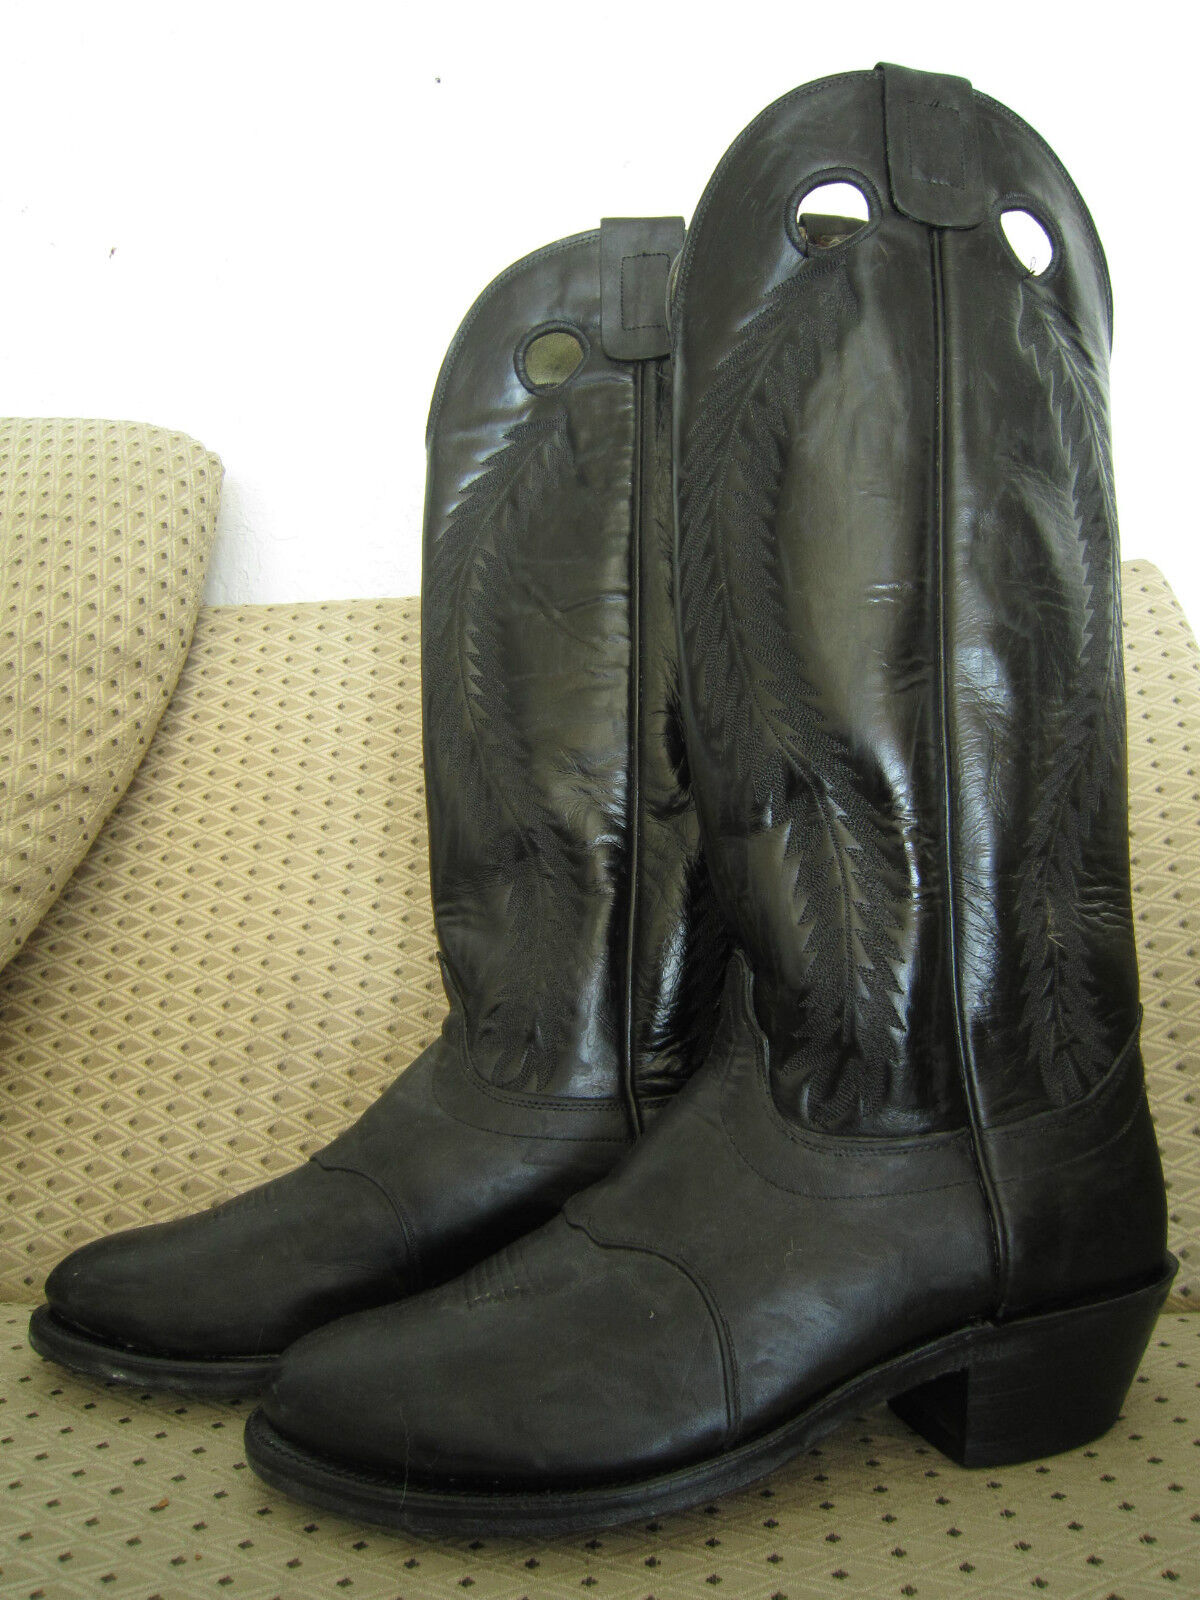 Vintage By CAPRIOLA Cowboy Stiefel - By Vintage World Famous Saddle Maker To The Stars  sz 11 873265